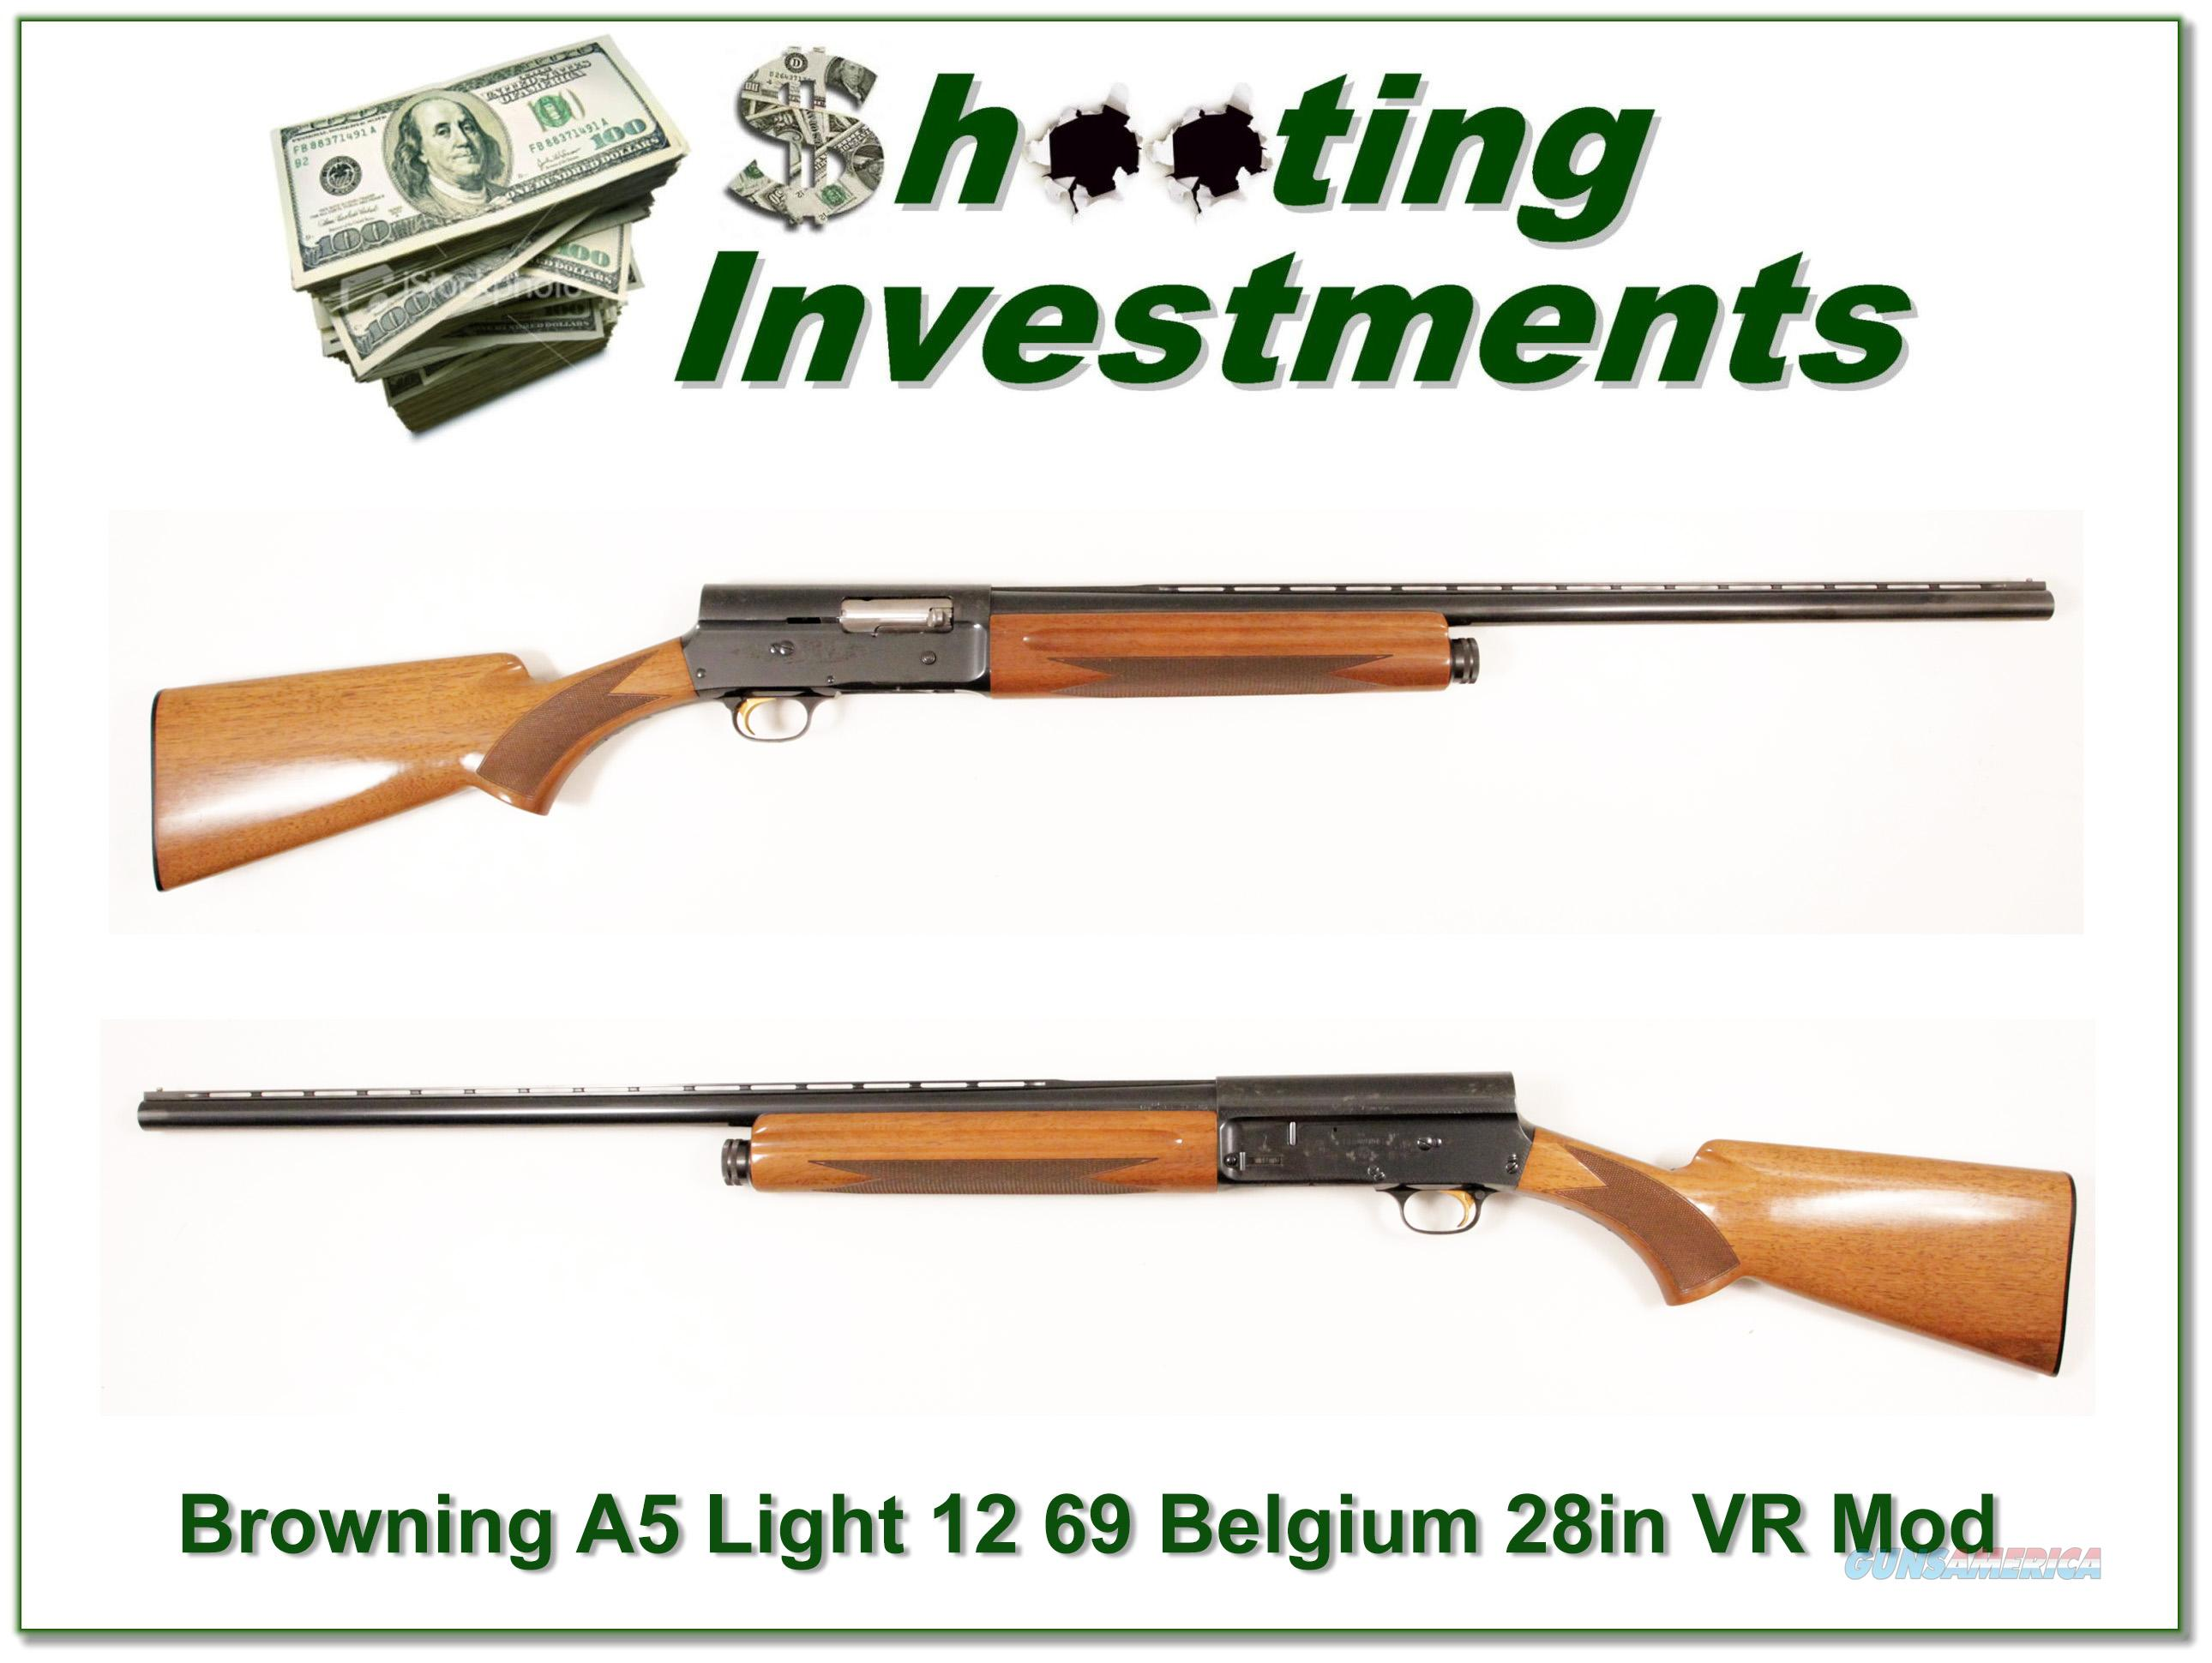 Browning A5 Light 12 69 Belgium Blond VR!  Guns > Shotguns > Browning Shotguns > Autoloaders > Hunting